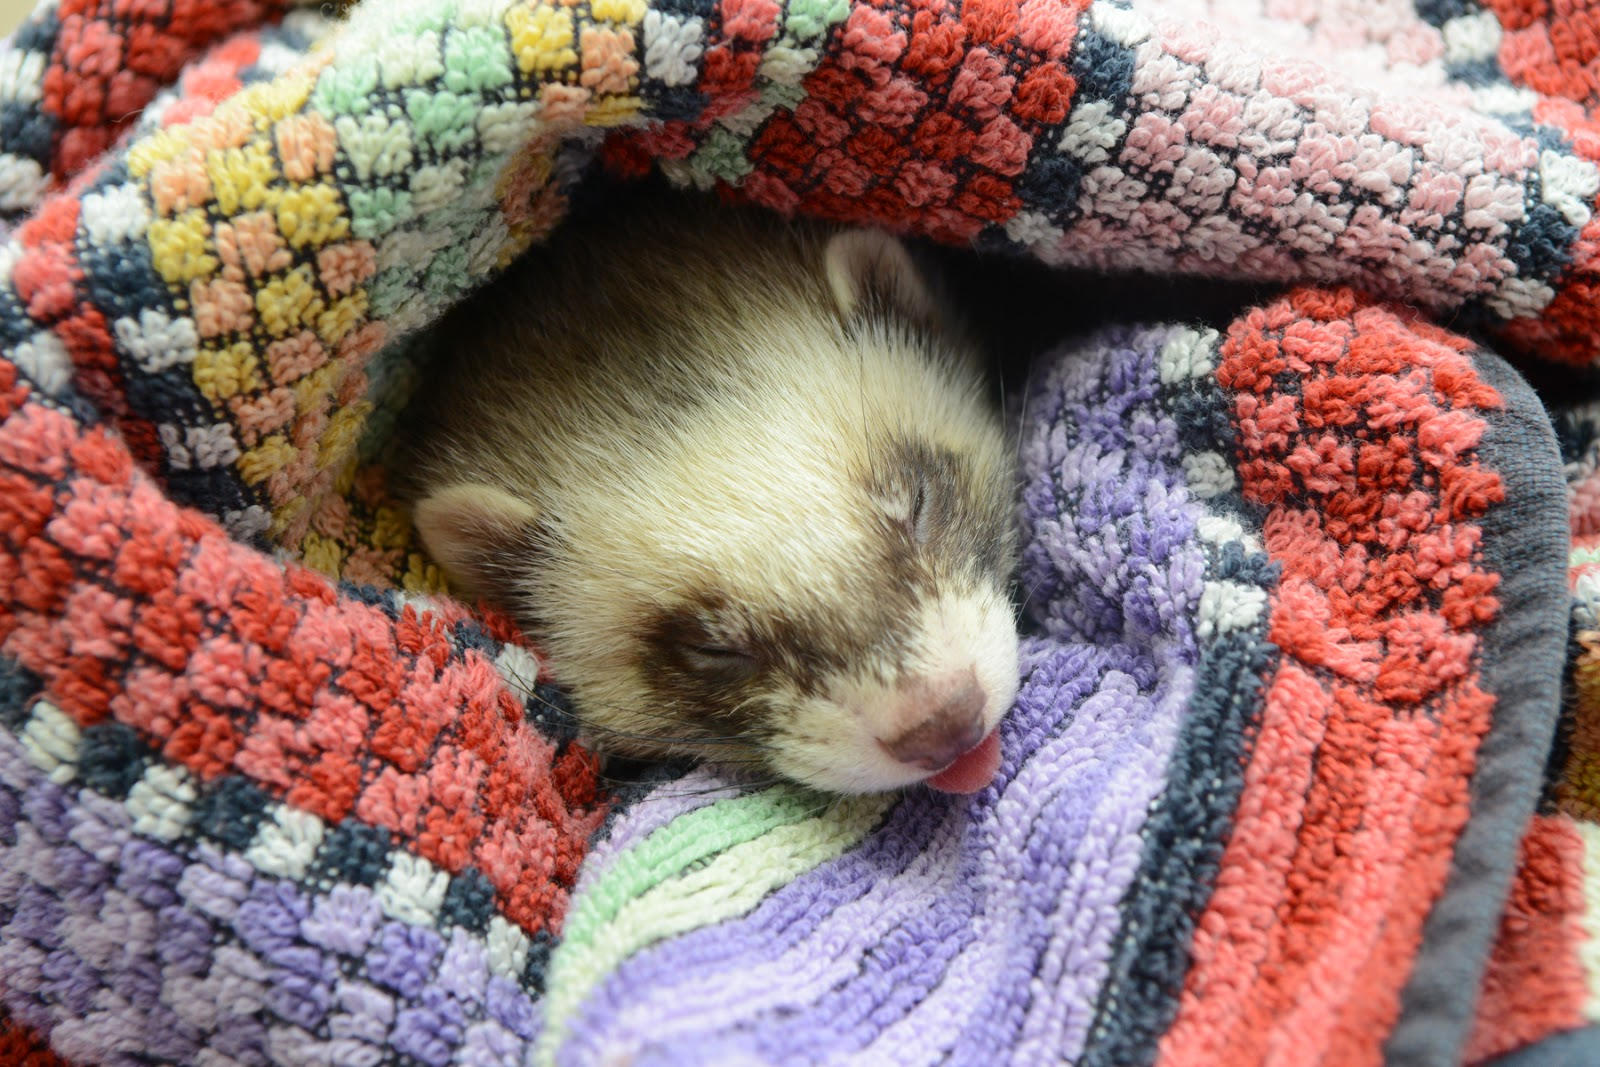 ferret sleeps off anaesthetic anaesthesia